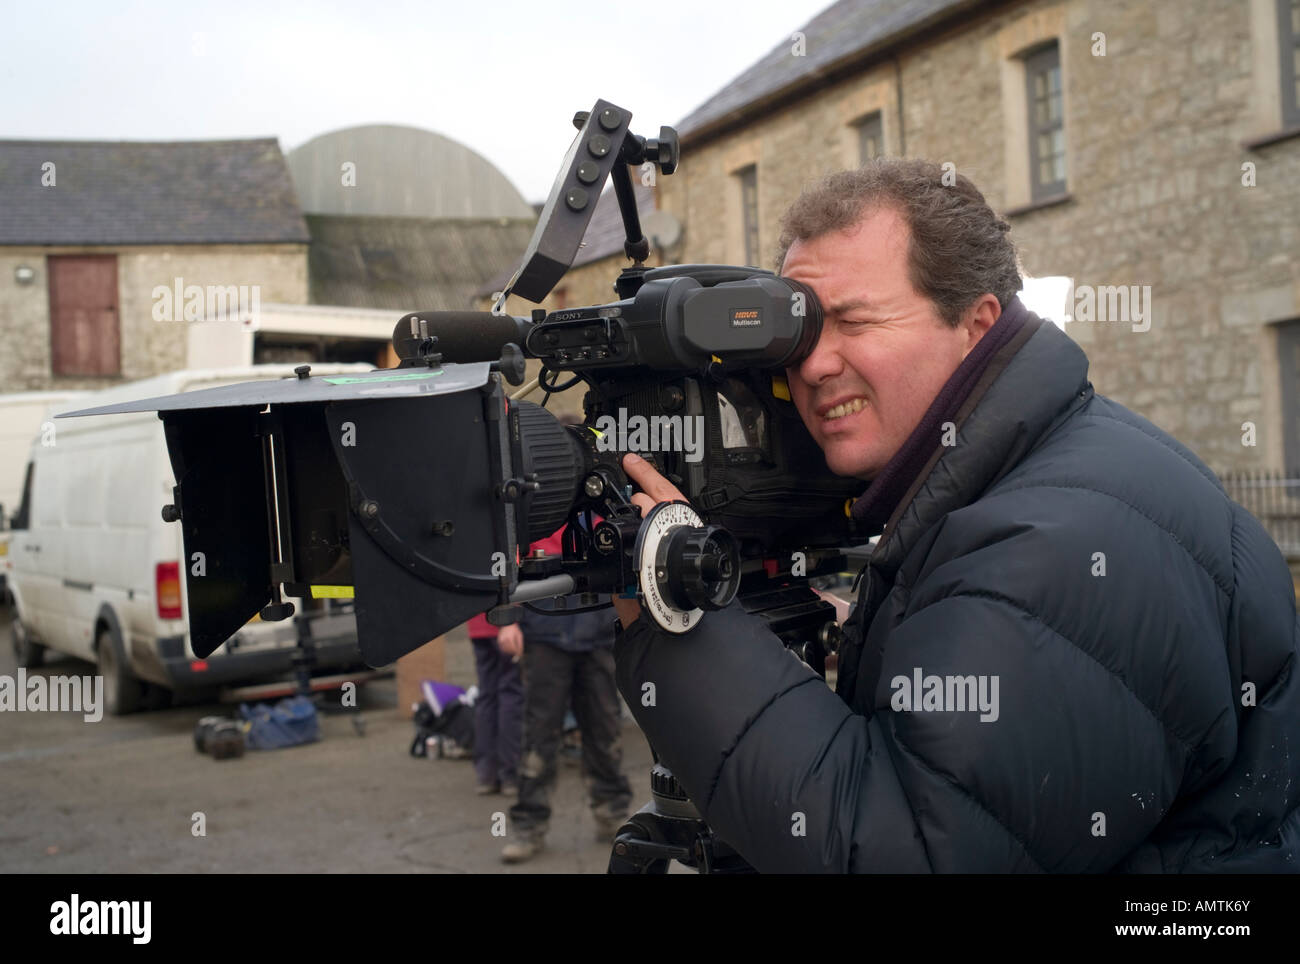 Male Video Cameraman Director Of Photography Using A Sony